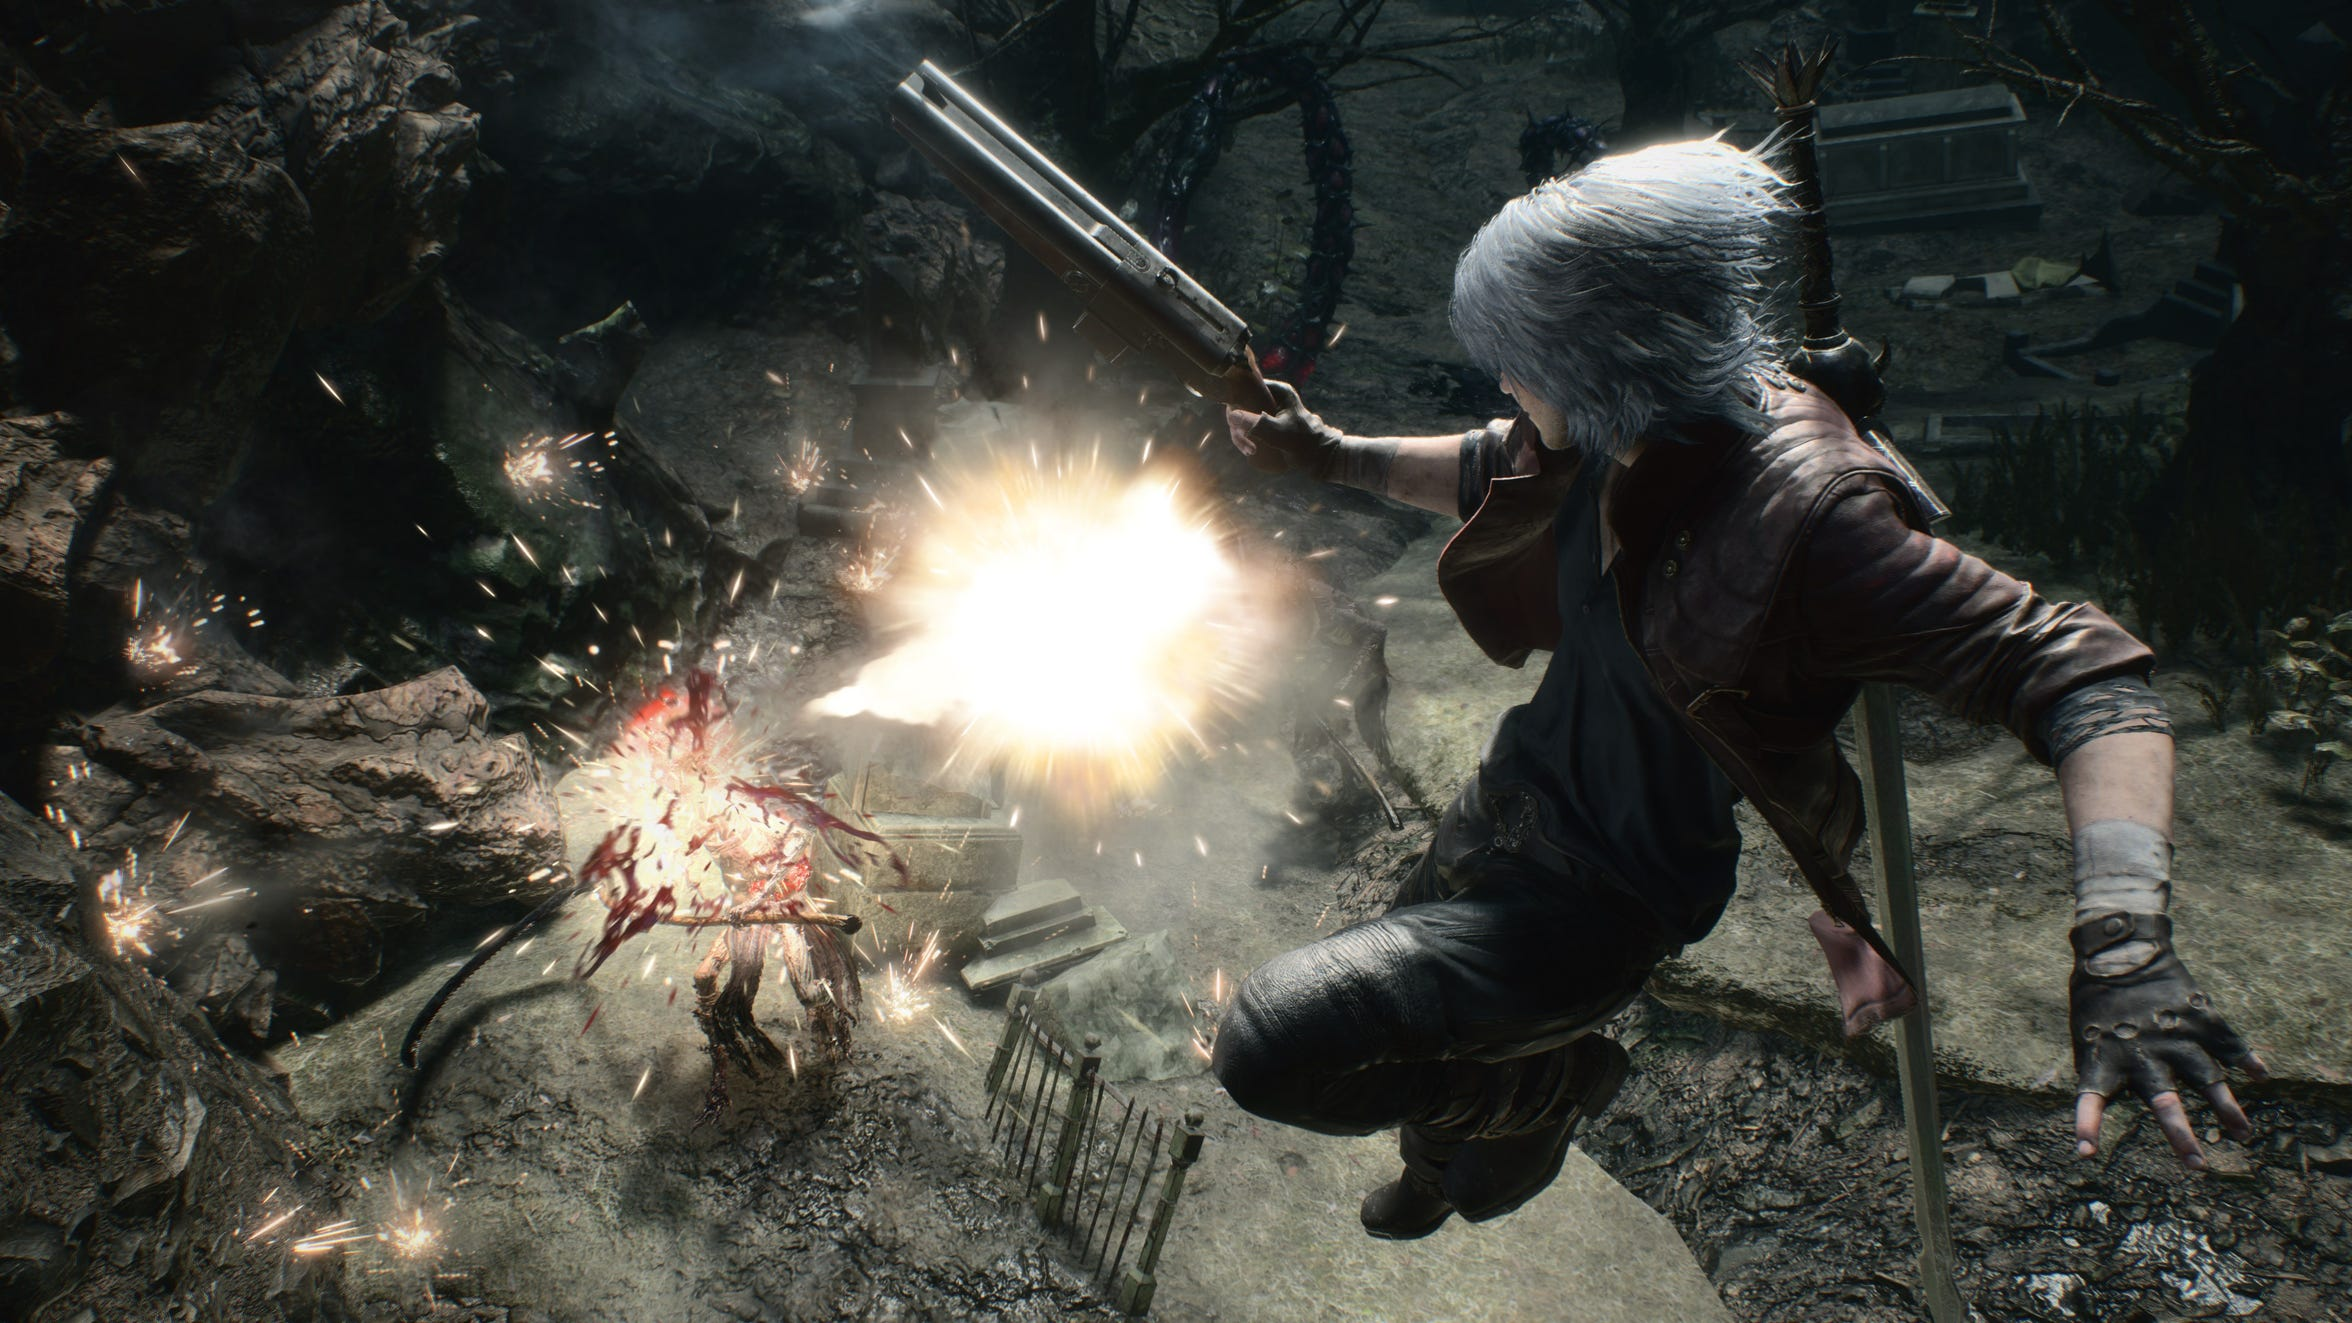 Dante enter the fray in Devil May Cry 5 for PC, PS4 and Xbox One.